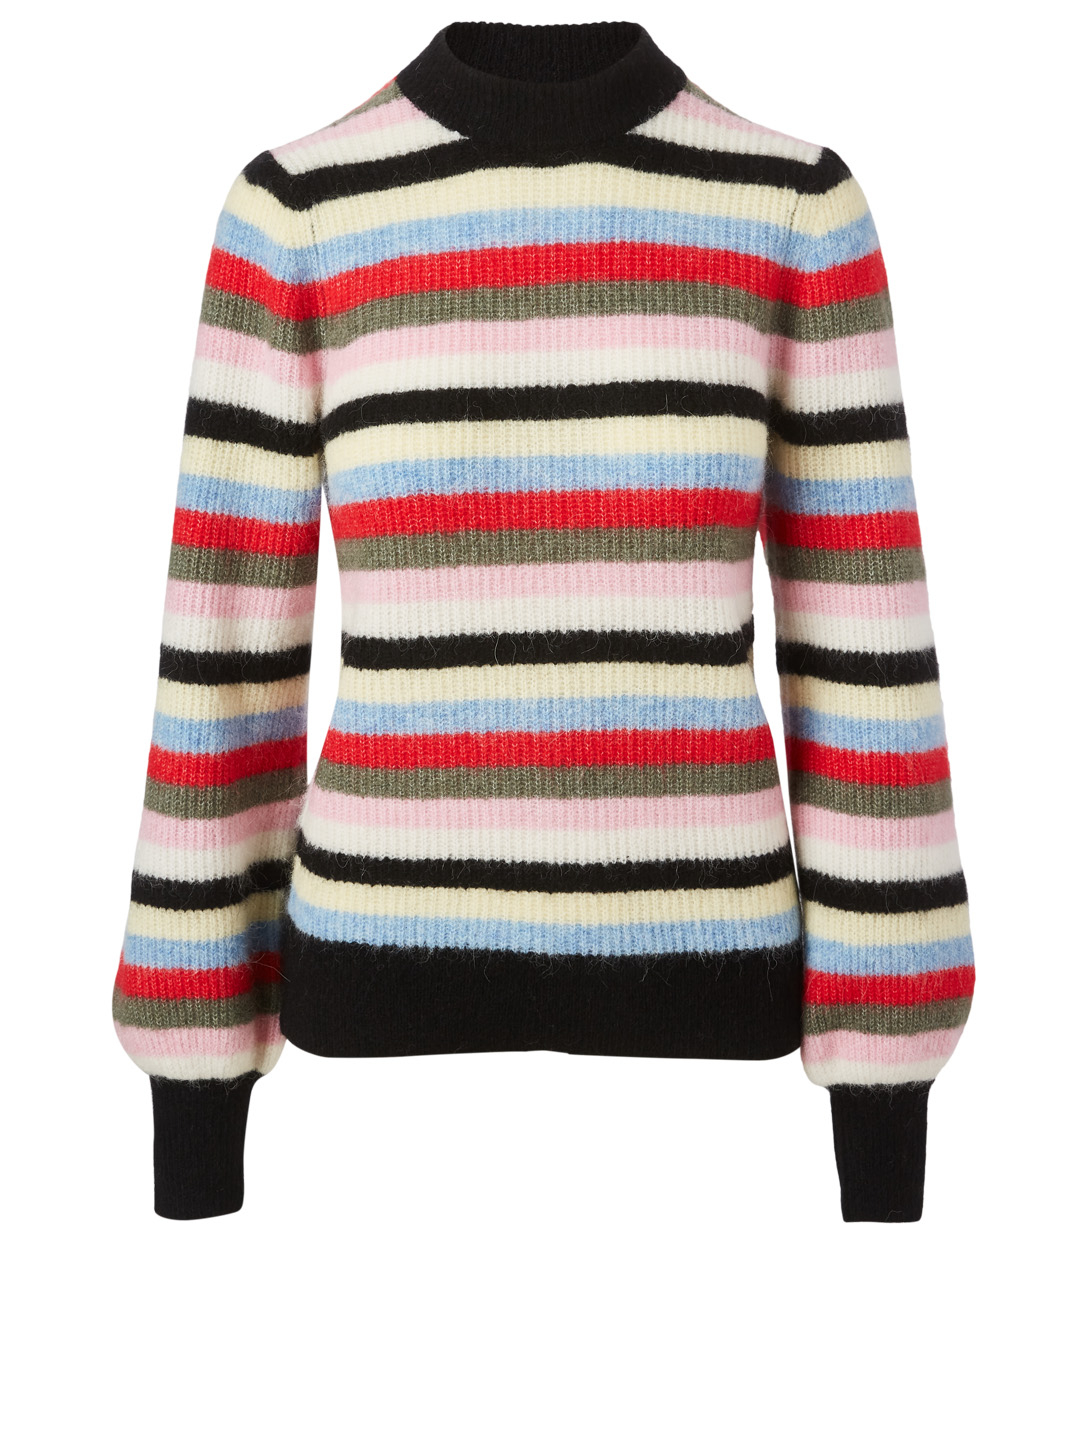 GANNI Wool And Alpaca Sweater In Striped Print Women's Multi